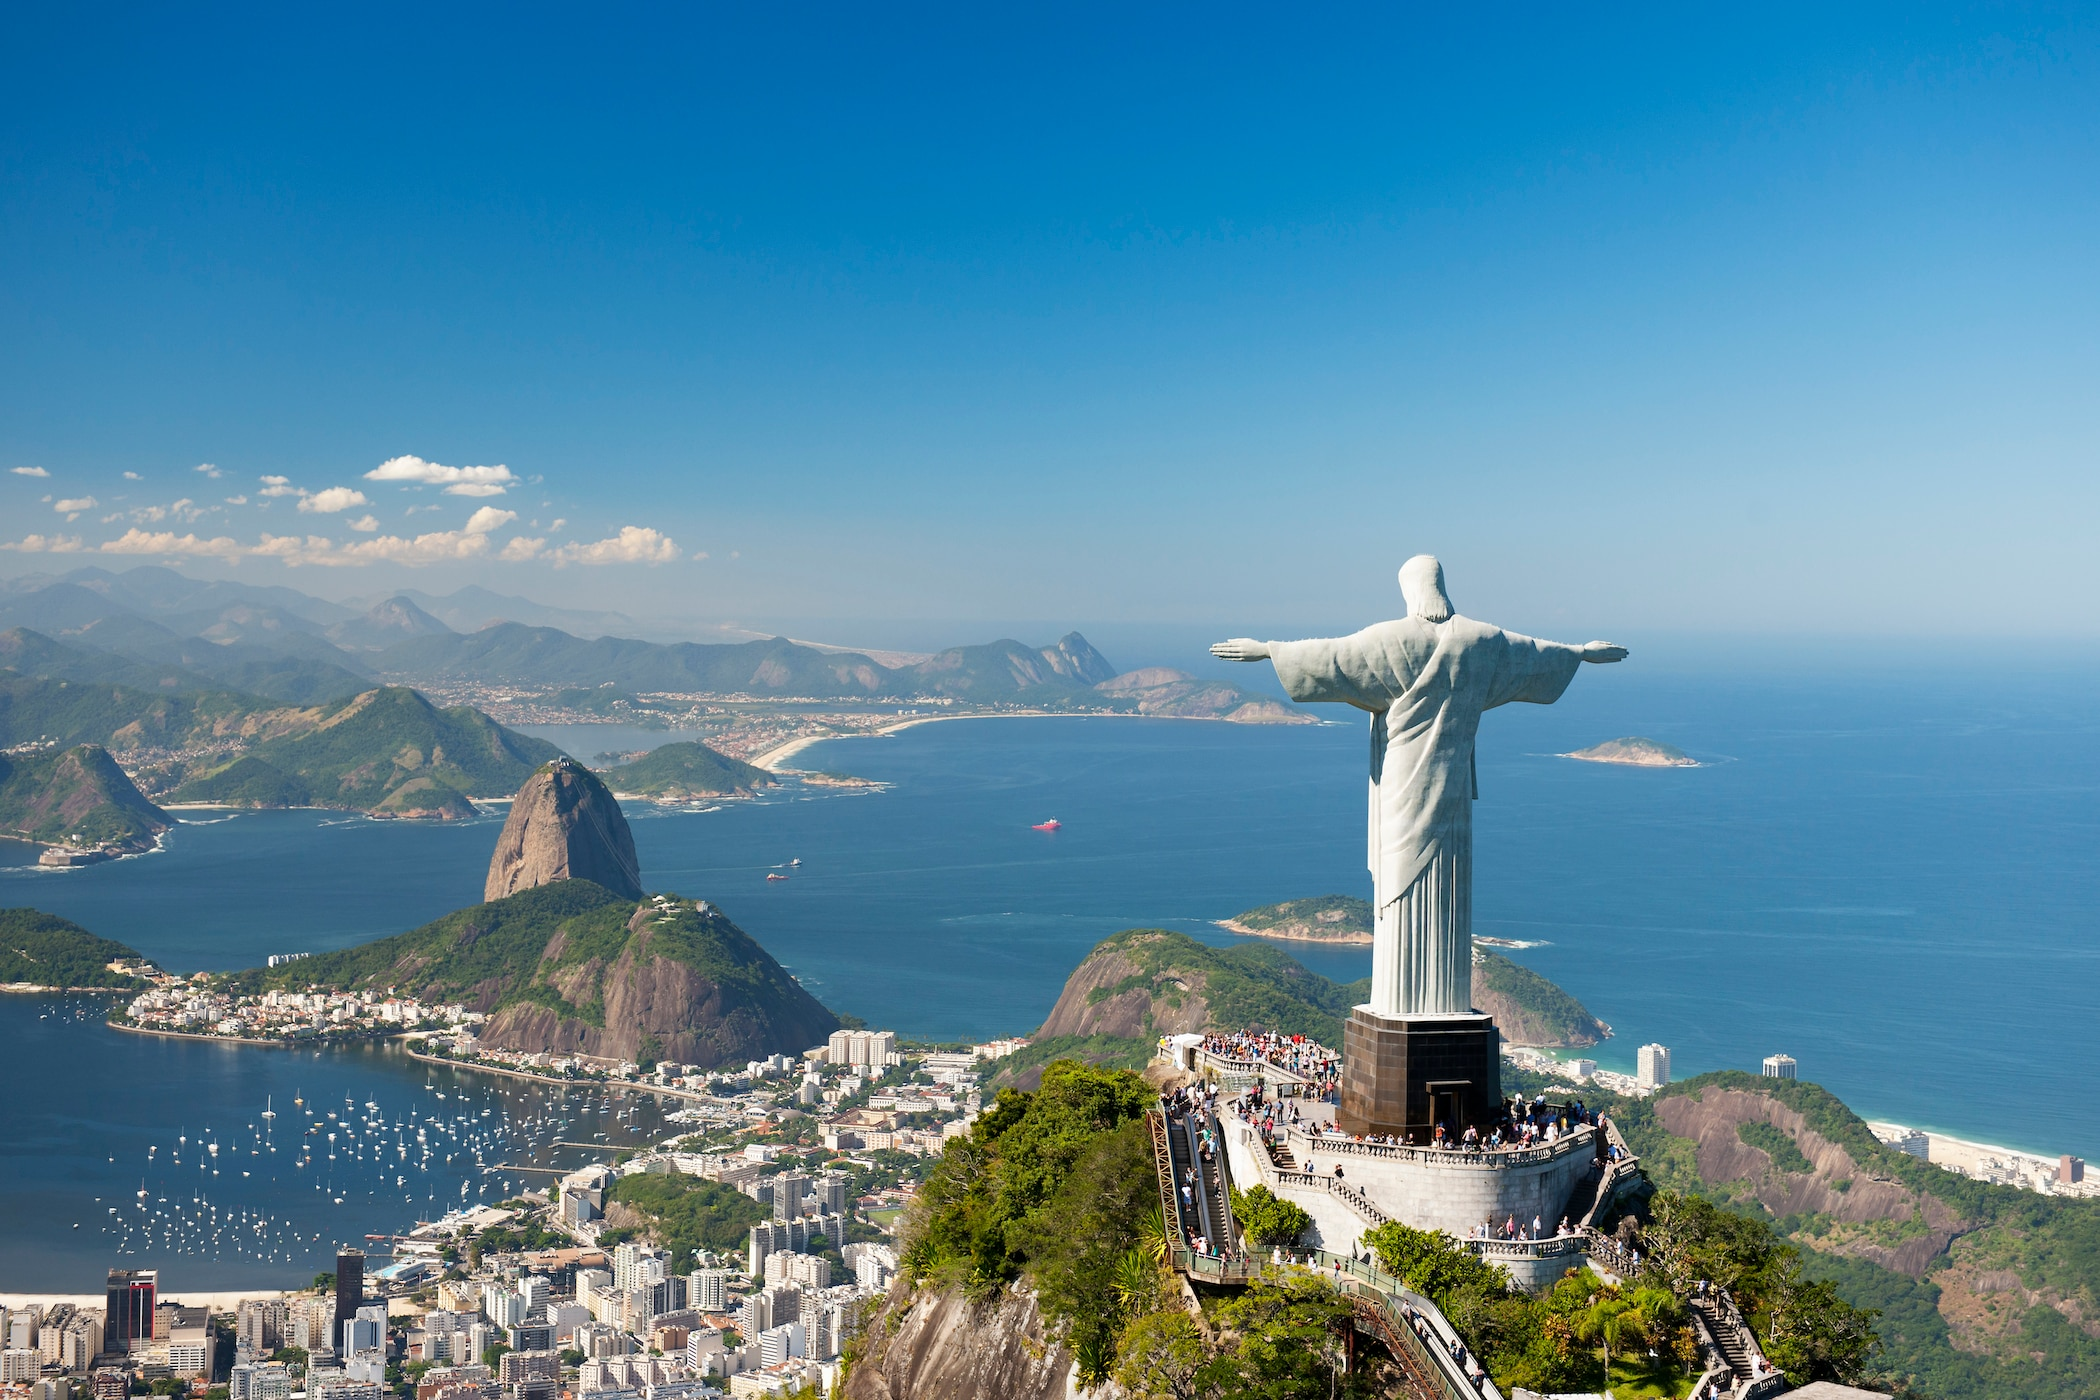 13 Interesting Facts about Rio de Janeiro You May Not Know